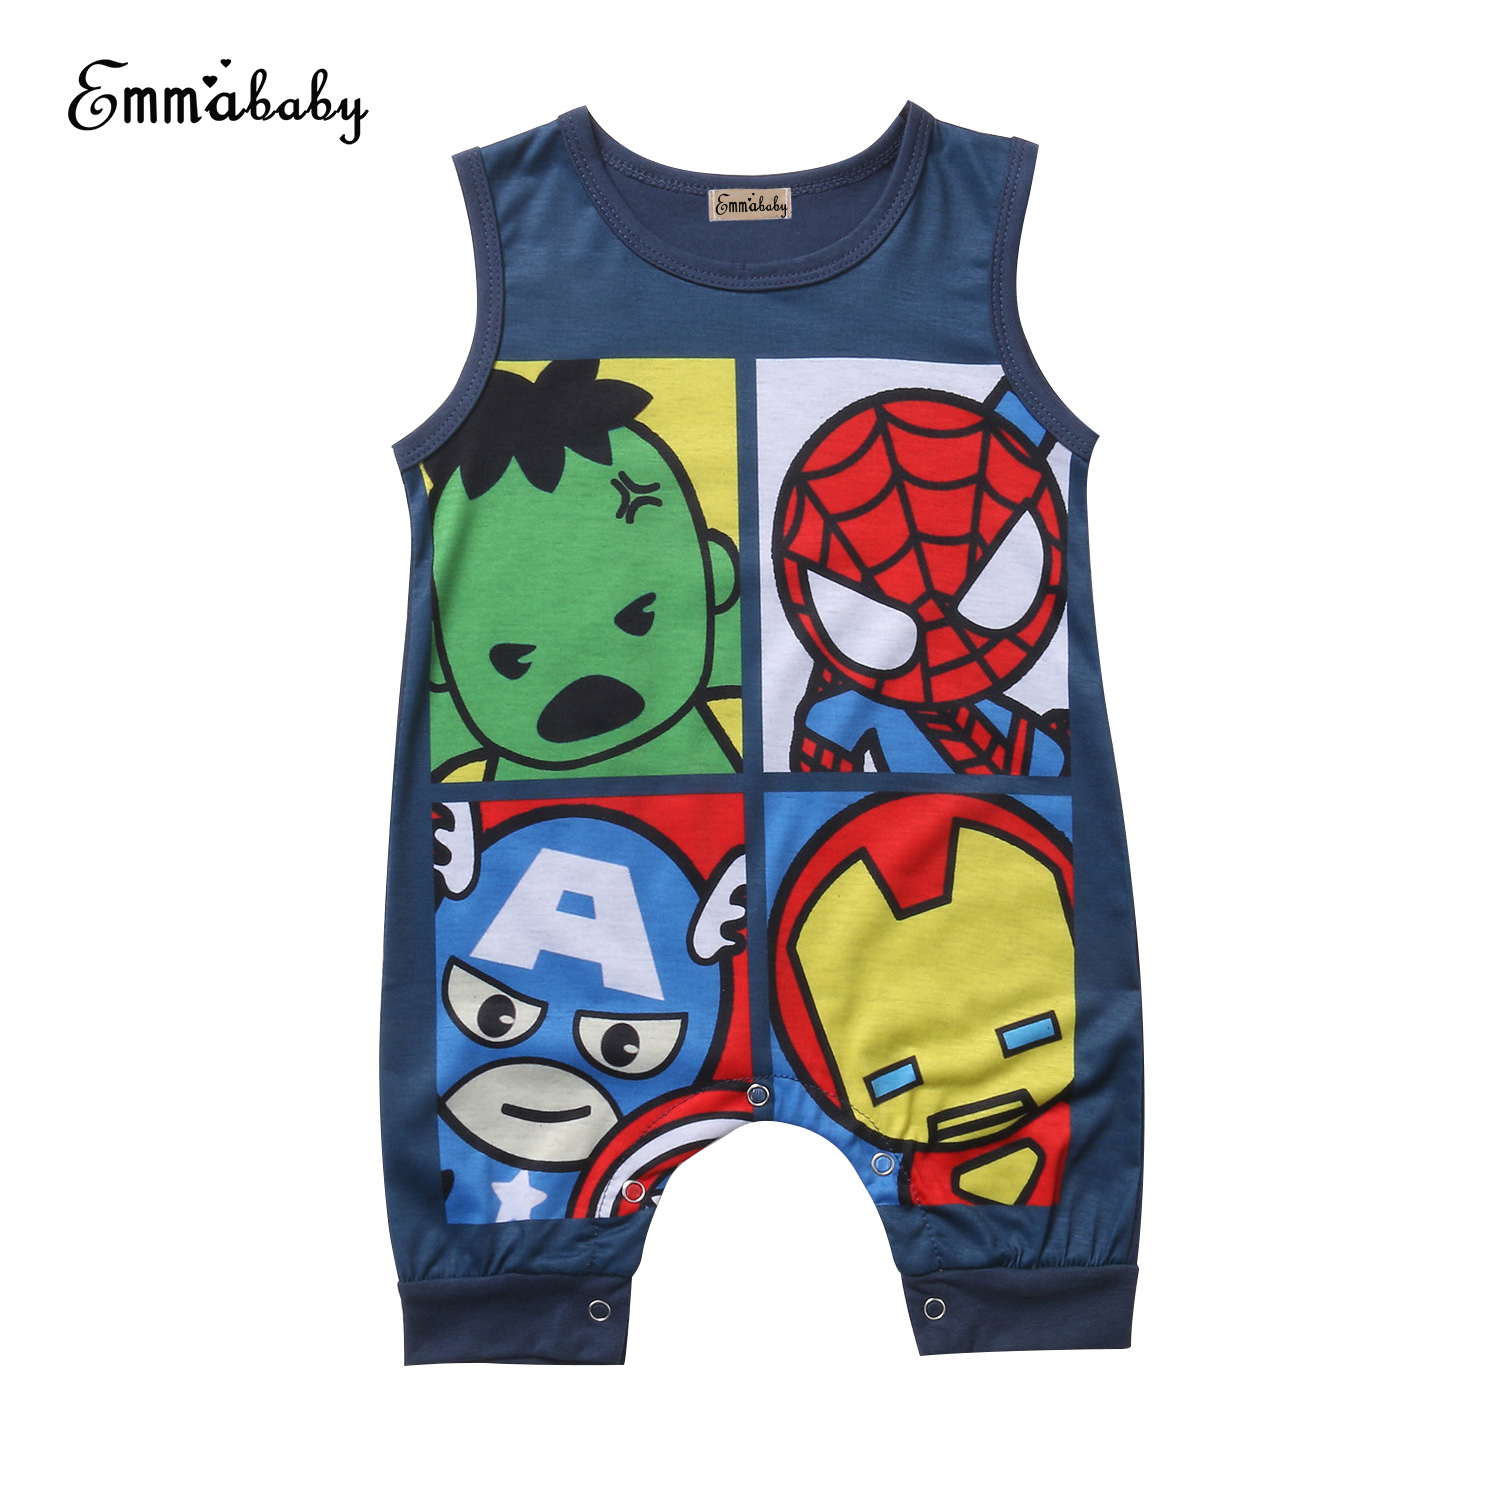 Summer New Lovely Newborn Infant Baby Boy Girl Cotton Sleeveless   Romper   Jumpsuit Kids Cute Cartoon Caracter Print Clothes Outfit